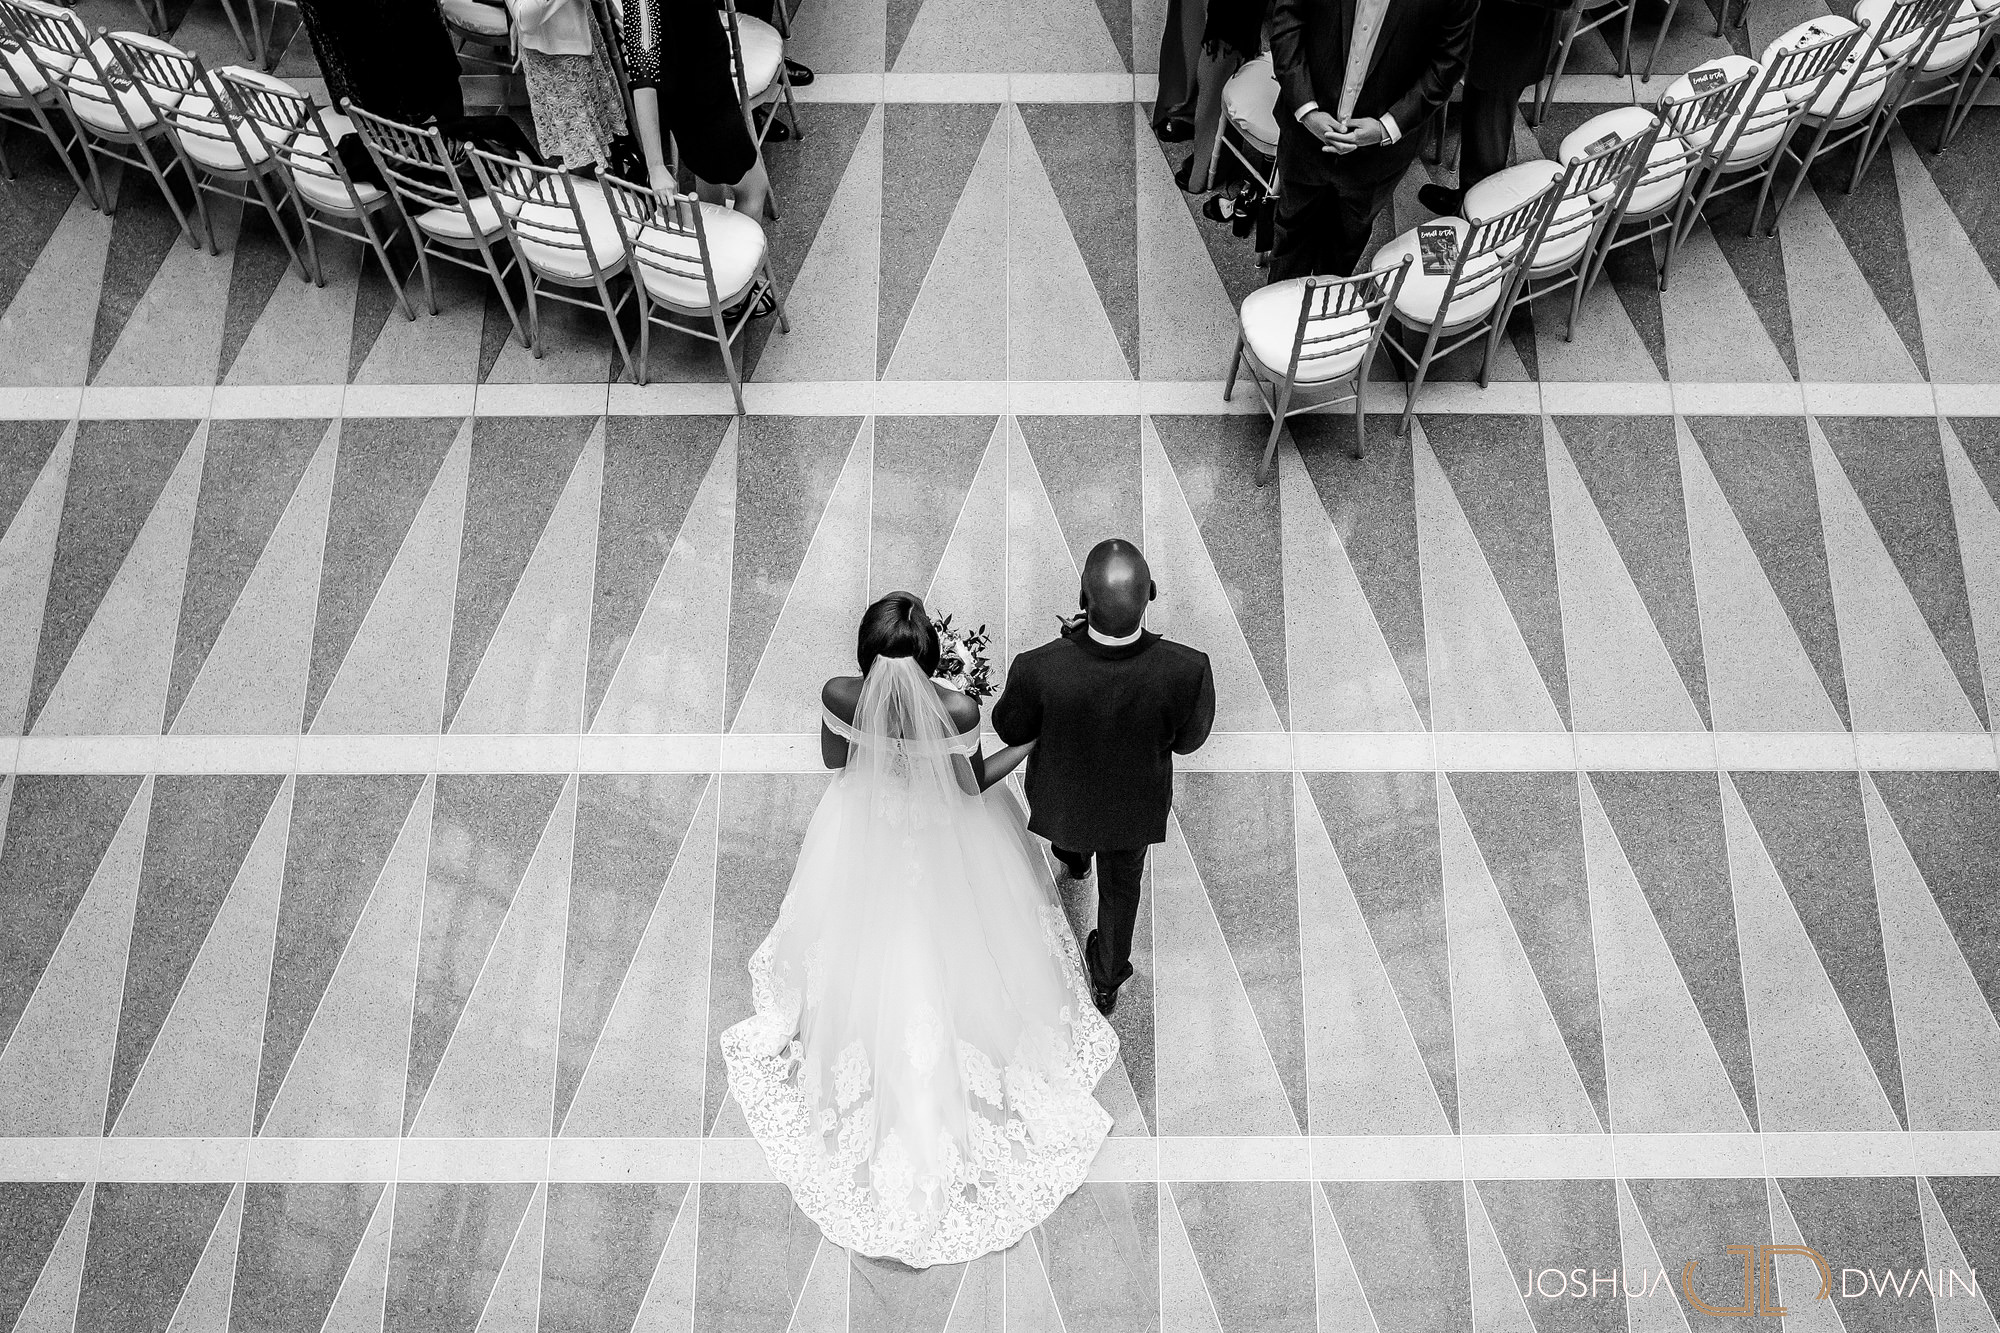 emerald-tolu--029-ronald-reagan-building-trade-center-best-washington-dc--wedding-photographer-joshua-dwain